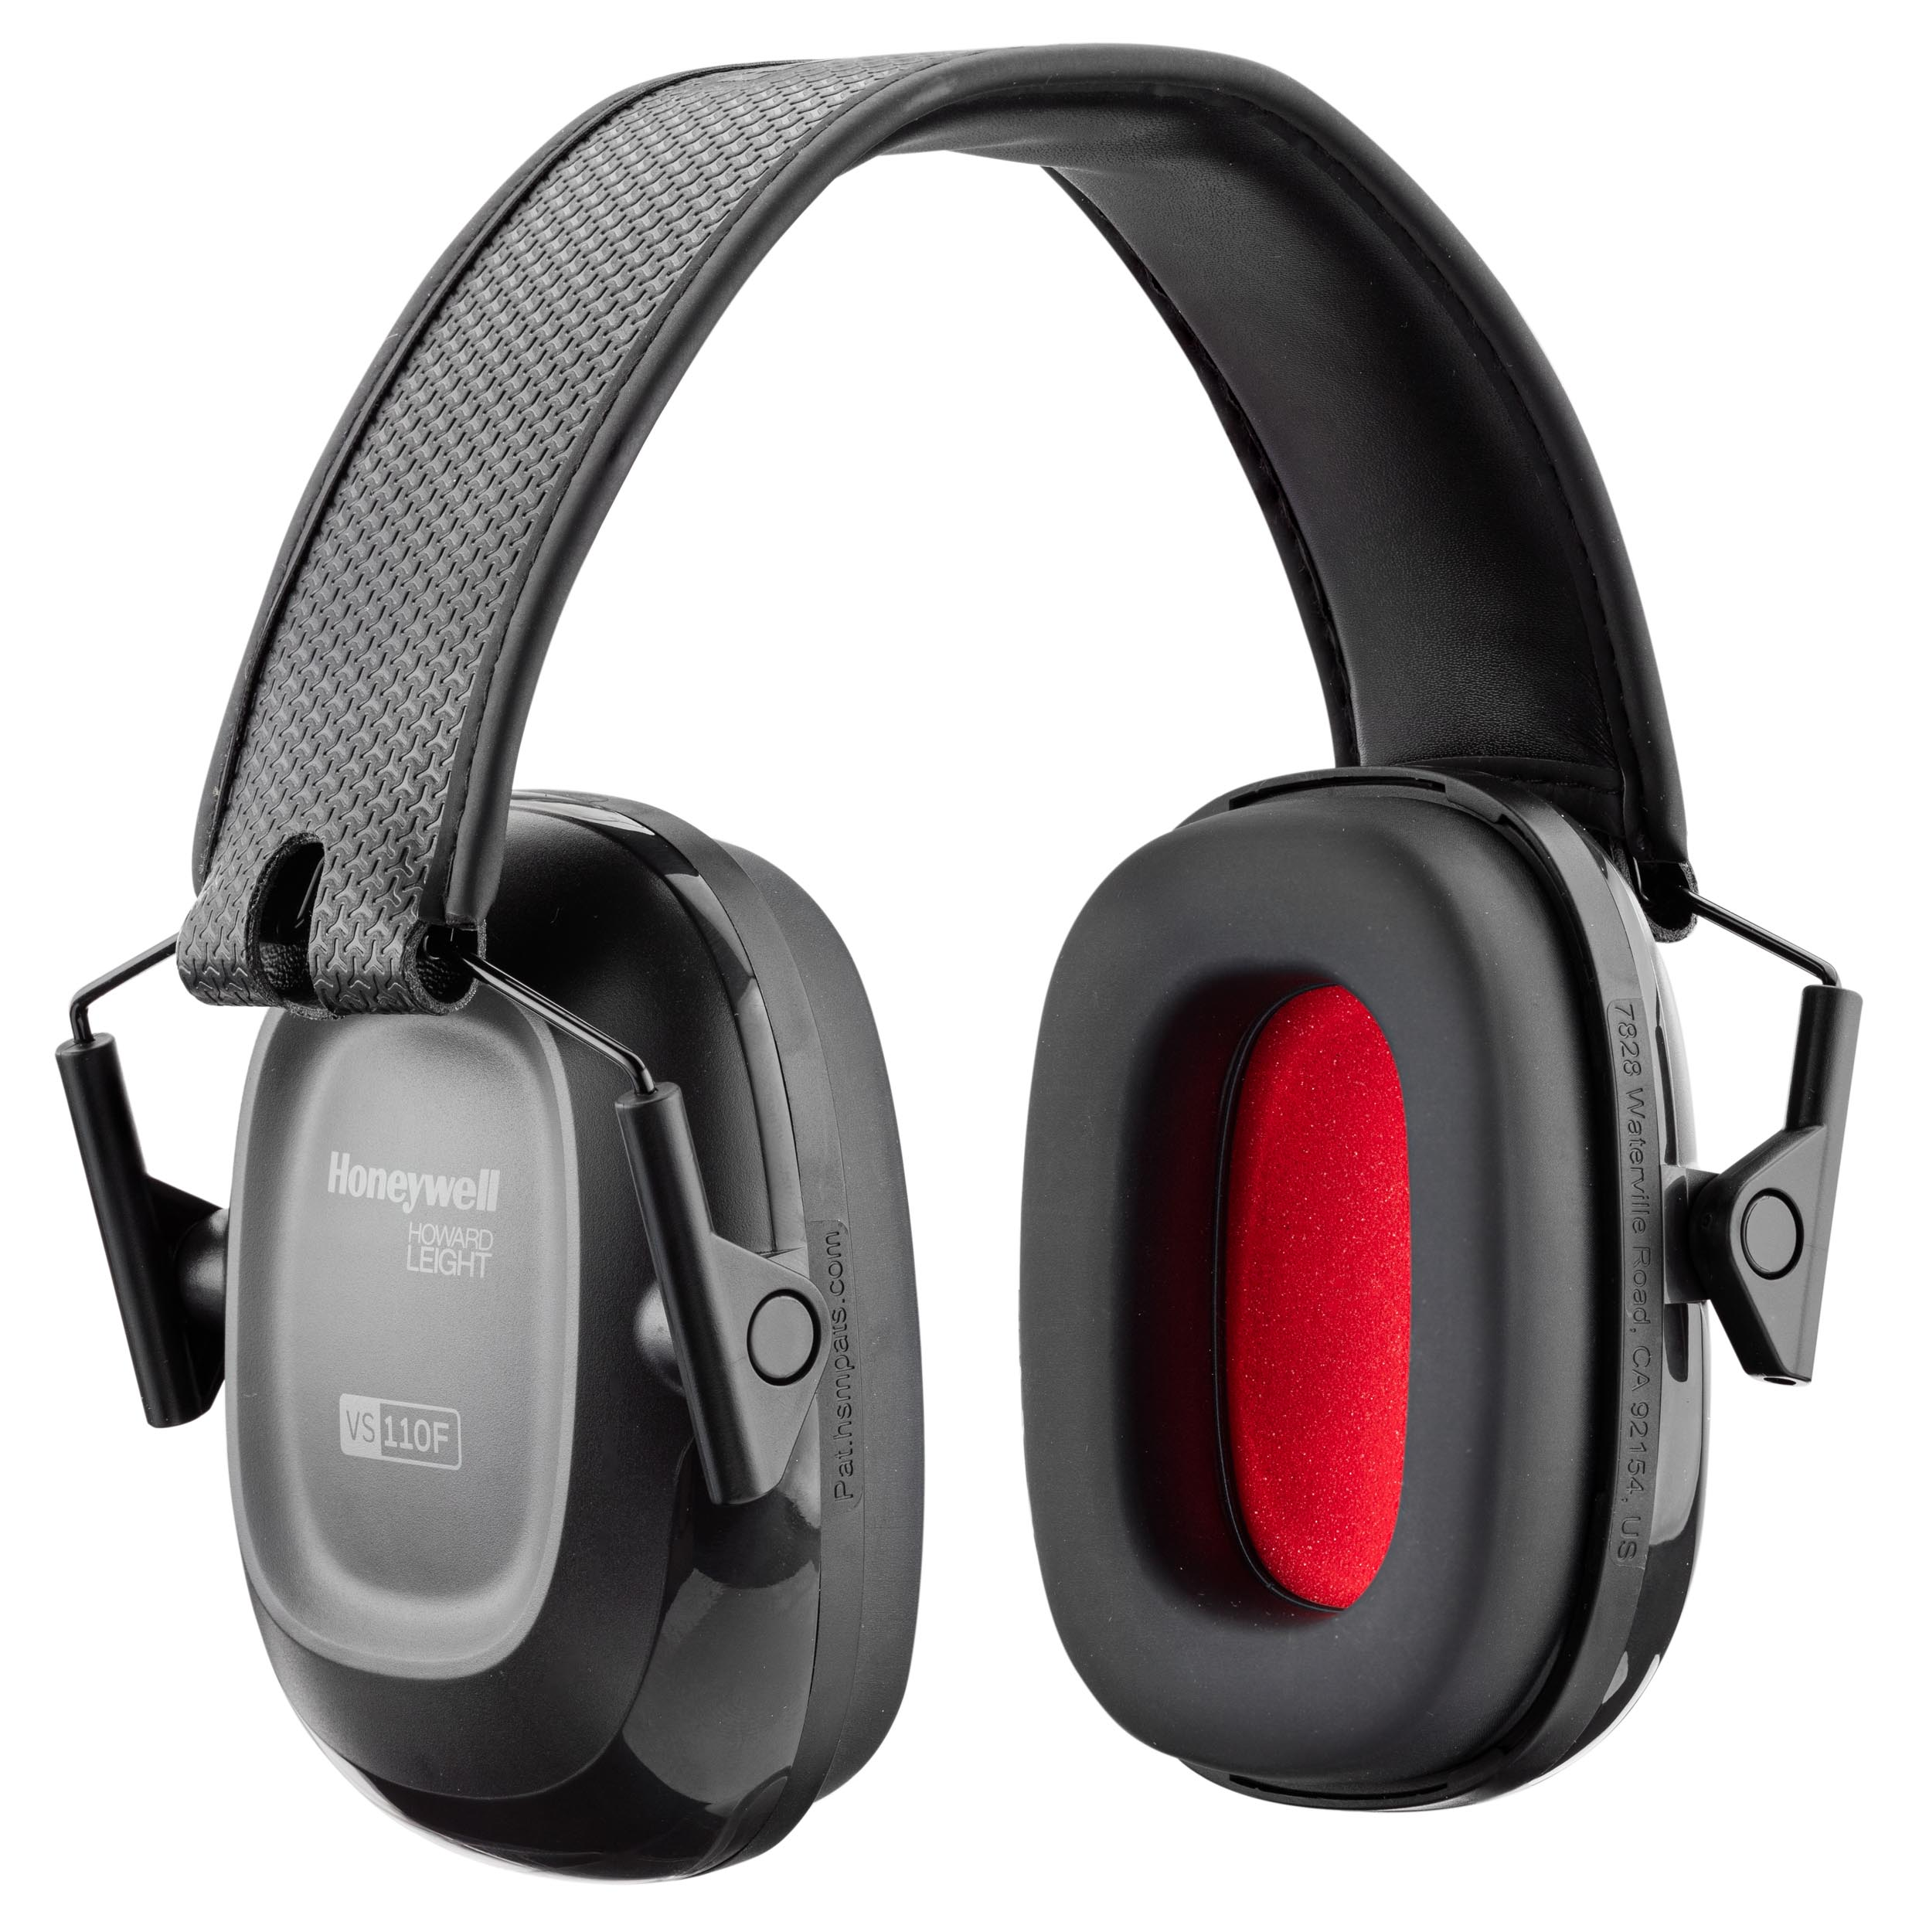 A51105 Verishield VS 110F compact earmuffs - Bilsom - A51105